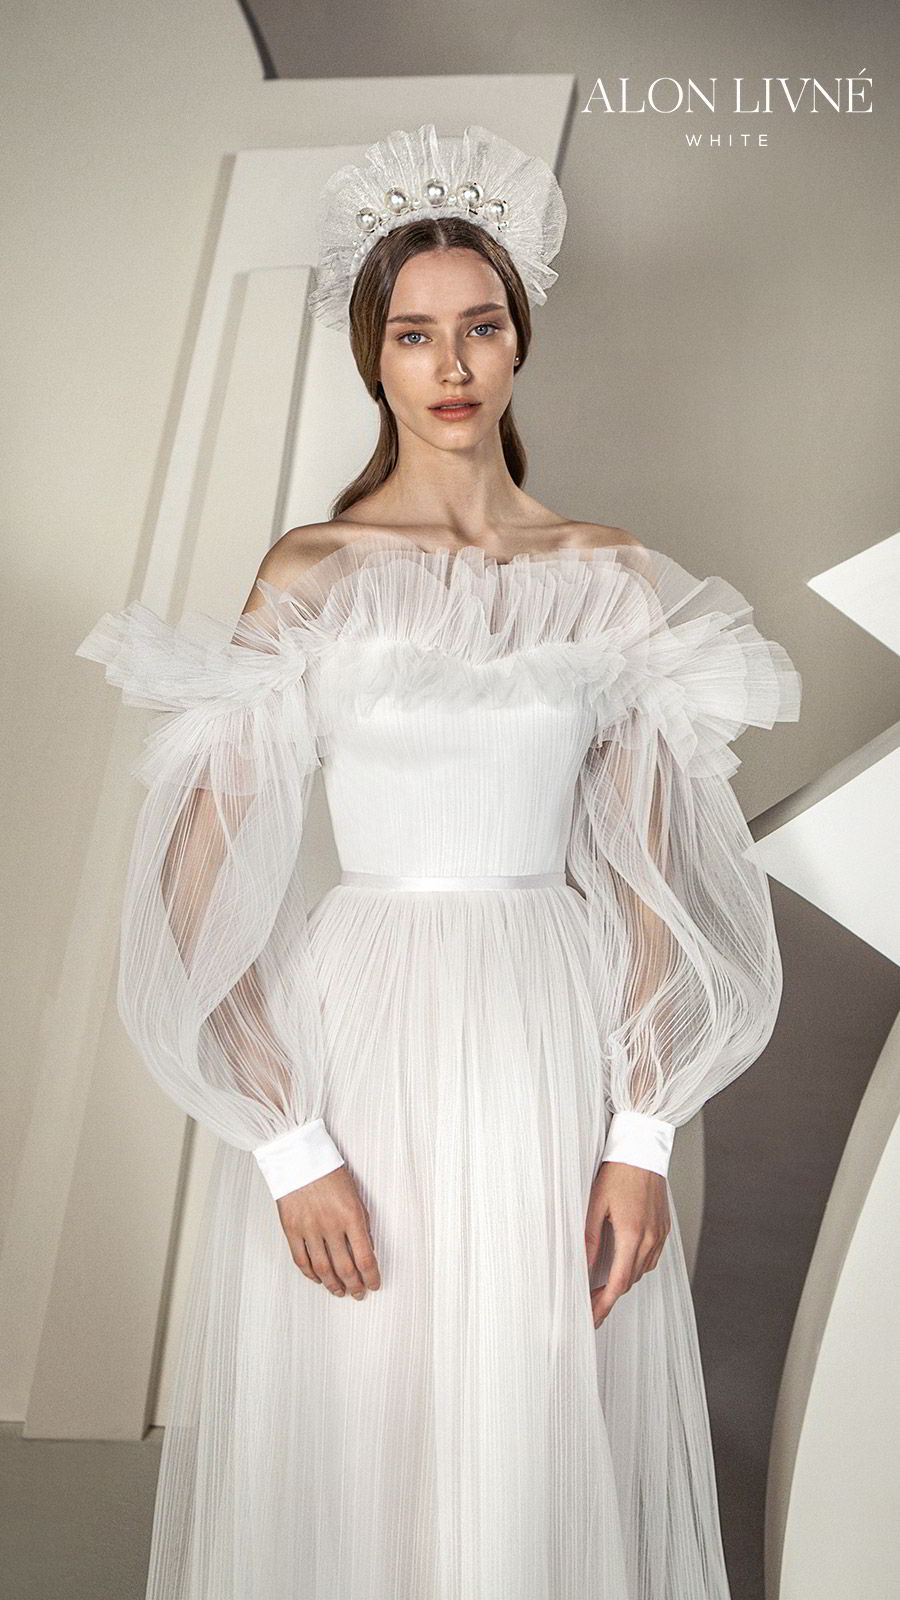 alon livne white spring 2020 bridal off shoulder illusion long bishop sleeves semi sweetheart ruffle neckline ruched bodice a line ball gown wedding dress (claudia) romantic boho modern mv